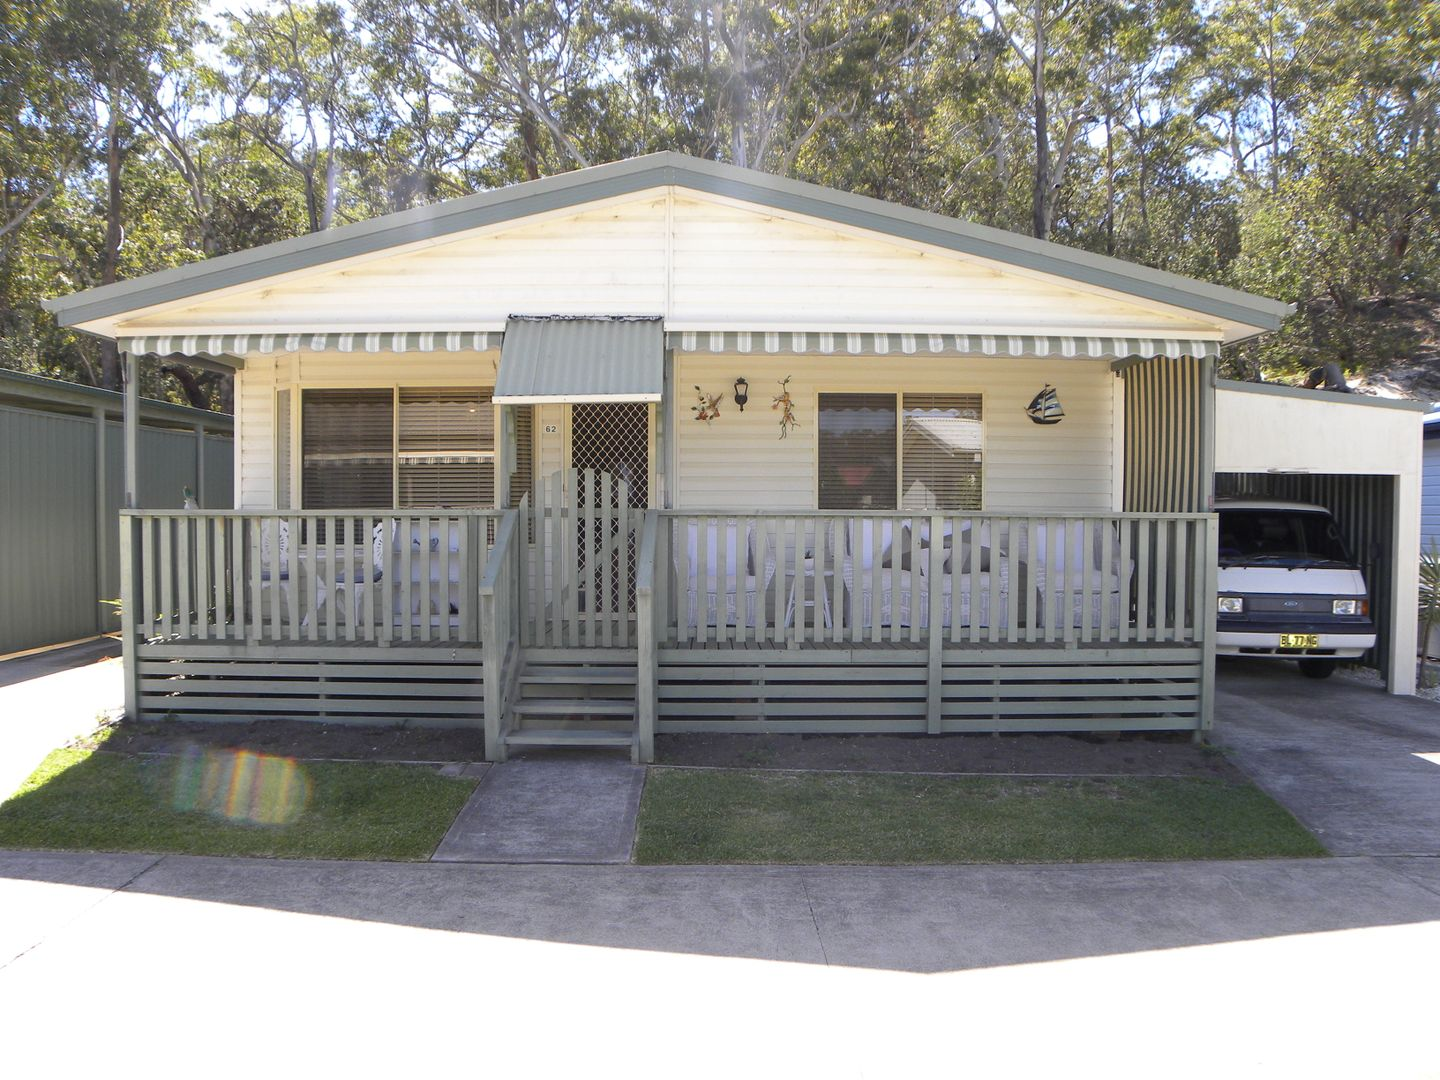 62/187 The Springs Rd, Sussex Inlet NSW 2540, Image 0